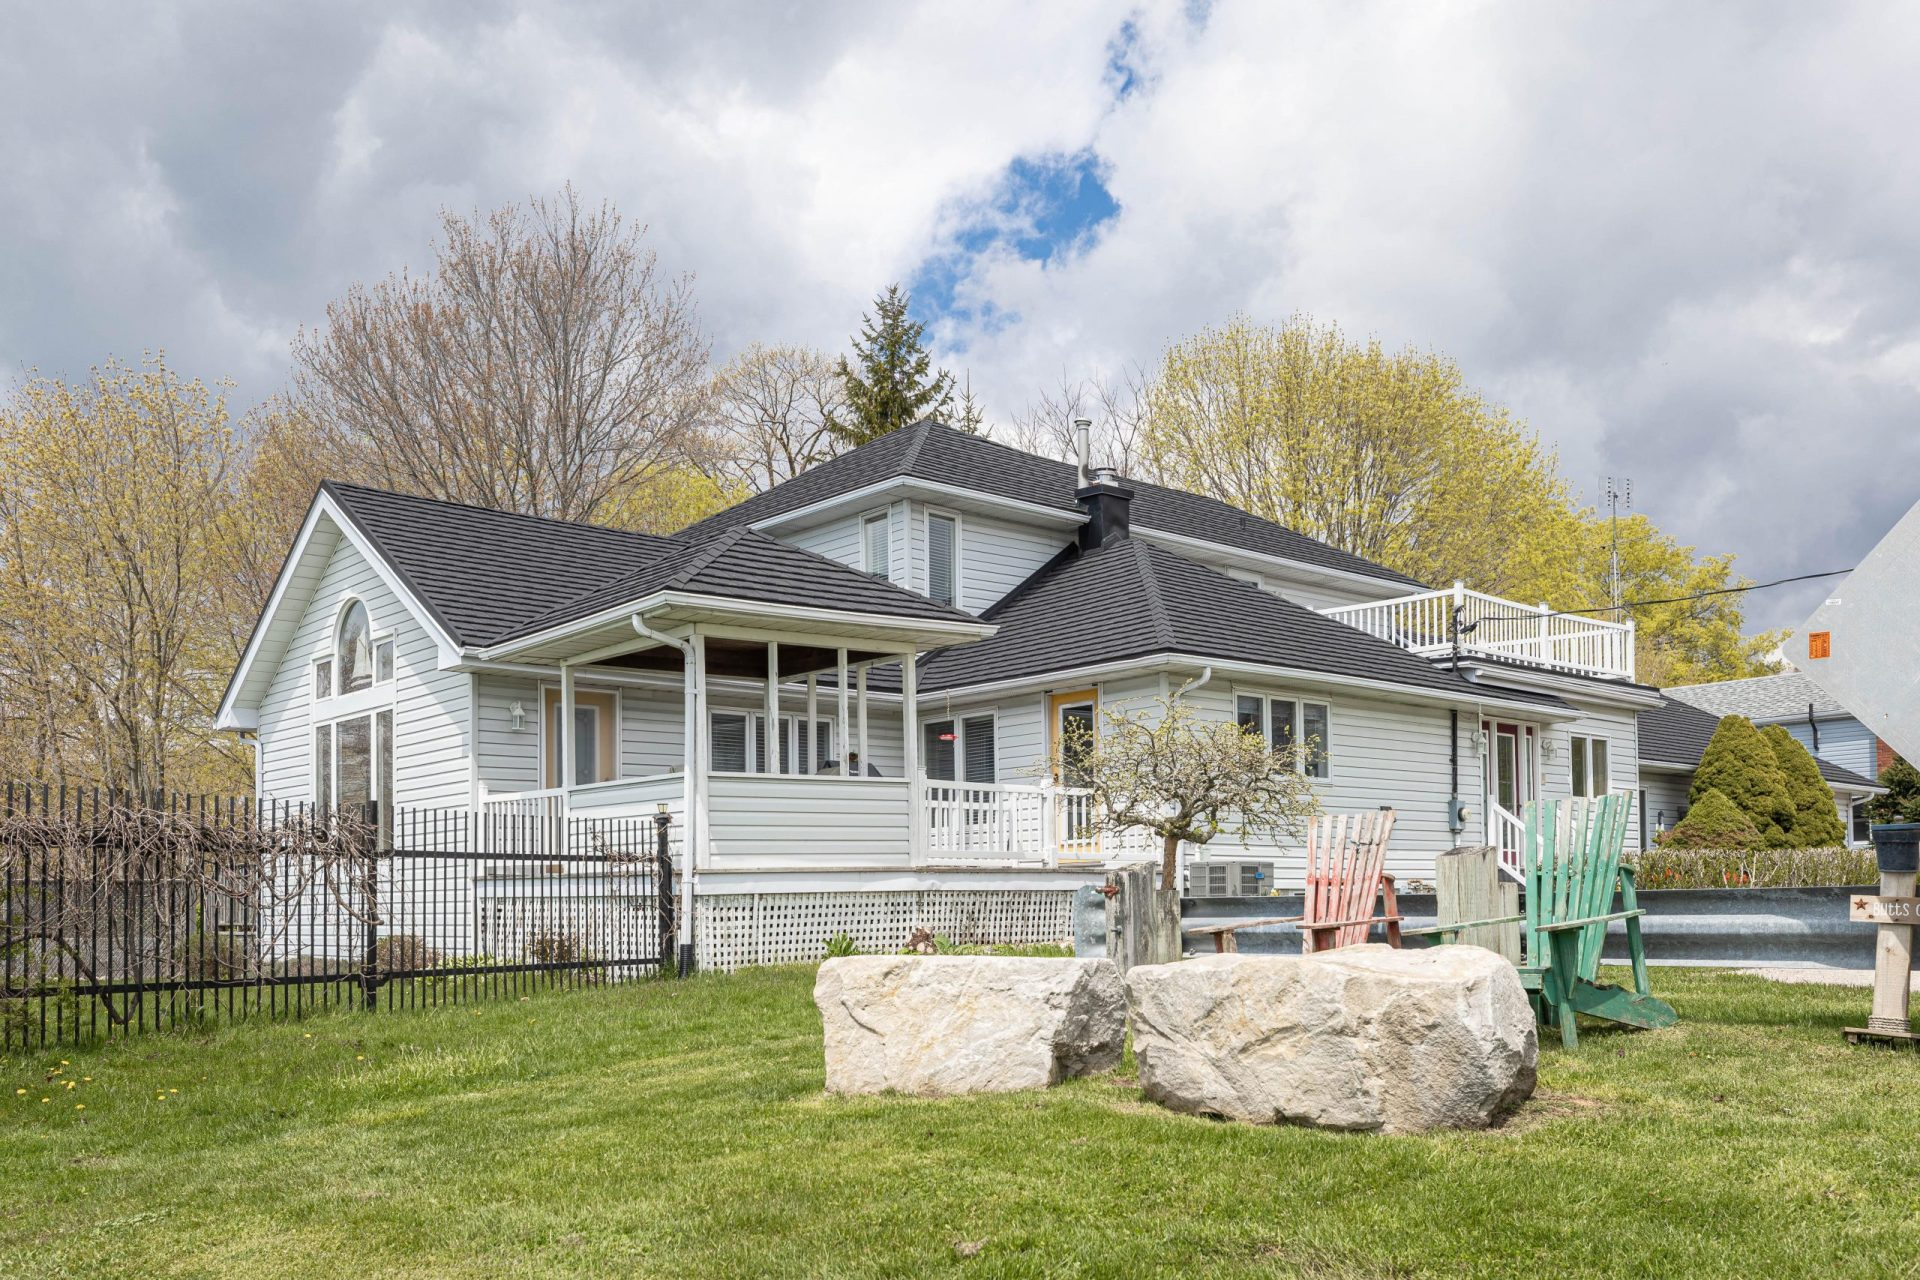 White house with grey metal roof from Metal Roof Outlet and green lawn with a single tree, large decorative rocks and a fence with muskoka chairs on the lawn